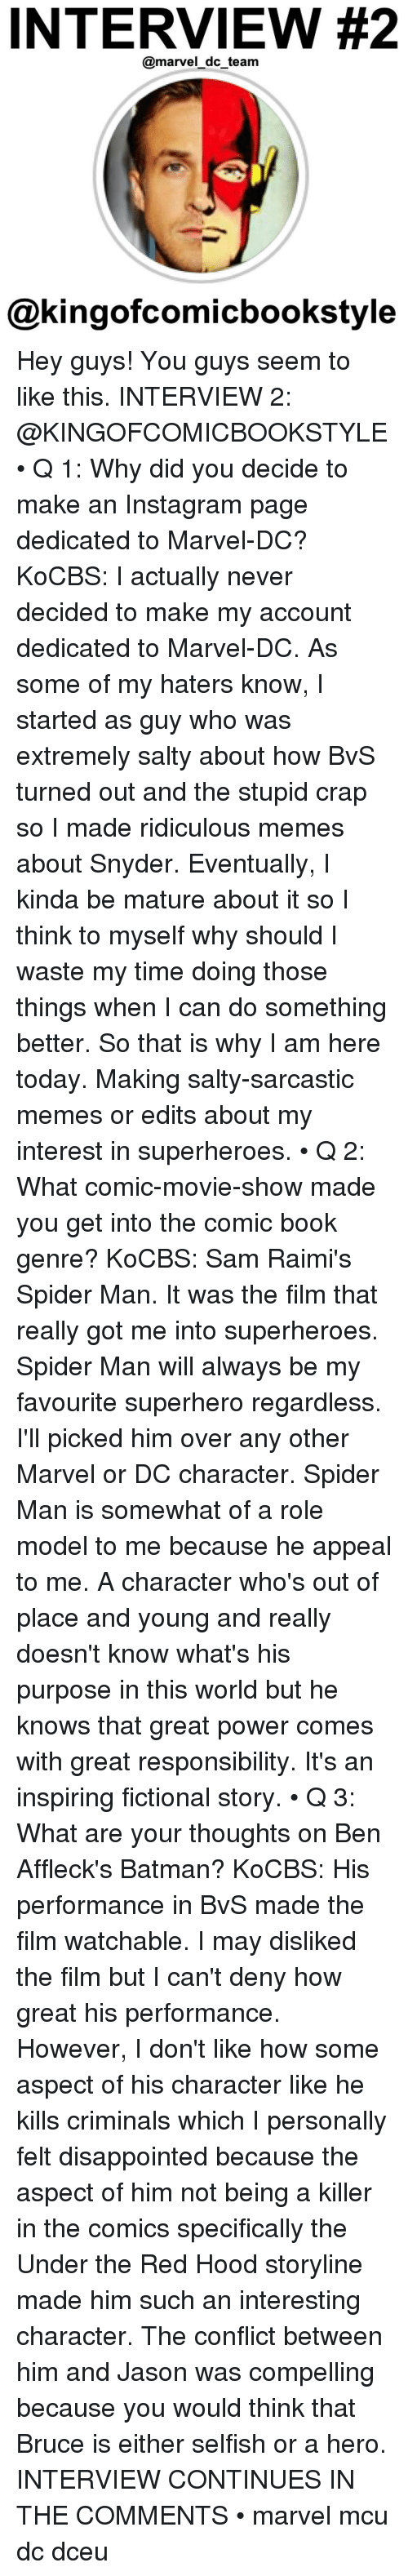 Sarcastic Meme: INTERVIEW #2  @marvel dc team  @kingofcomicbookstyle Hey guys! You guys seem to like this. INTERVIEW 2: @KINGOFCOMICBOOKSTYLE • Q 1: Why did you decide to make an Instagram page dedicated to Marvel-DC? KoCBS: I actually never decided to make my account dedicated to Marvel-DC. As some of my haters know, I started as guy who was extremely salty about how BvS turned out and the stupid crap so I made ridiculous memes about Snyder. Eventually, I kinda be mature about it so I think to myself why should I waste my time doing those things when I can do something better. So that is why I am here today. Making salty-sarcastic memes or edits about my interest in superheroes. • Q 2: What comic-movie-show made you get into the comic book genre? KoCBS: Sam Raimi's Spider Man. It was the film that really got me into superheroes. Spider Man will always be my favourite superhero regardless. I'll picked him over any other Marvel or DC character. Spider Man is somewhat of a role model to me because he appeal to me. A character who's out of place and young and really doesn't know what's his purpose in this world but he knows that great power comes with great responsibility. It's an inspiring fictional story. • Q 3: What are your thoughts on Ben Affleck's Batman? KoCBS: His performance in BvS made the film watchable. I may disliked the film but I can't deny how great his performance. However, I don't like how some aspect of his character like he kills criminals which I personally felt disappointed because the aspect of him not being a killer in the comics specifically the Under the Red Hood storyline made him such an interesting character. The conflict between him and Jason was compelling because you would think that Bruce is either selfish or a hero. INTERVIEW CONTINUES IN THE COMMENTS • marvel mcu dc dceu